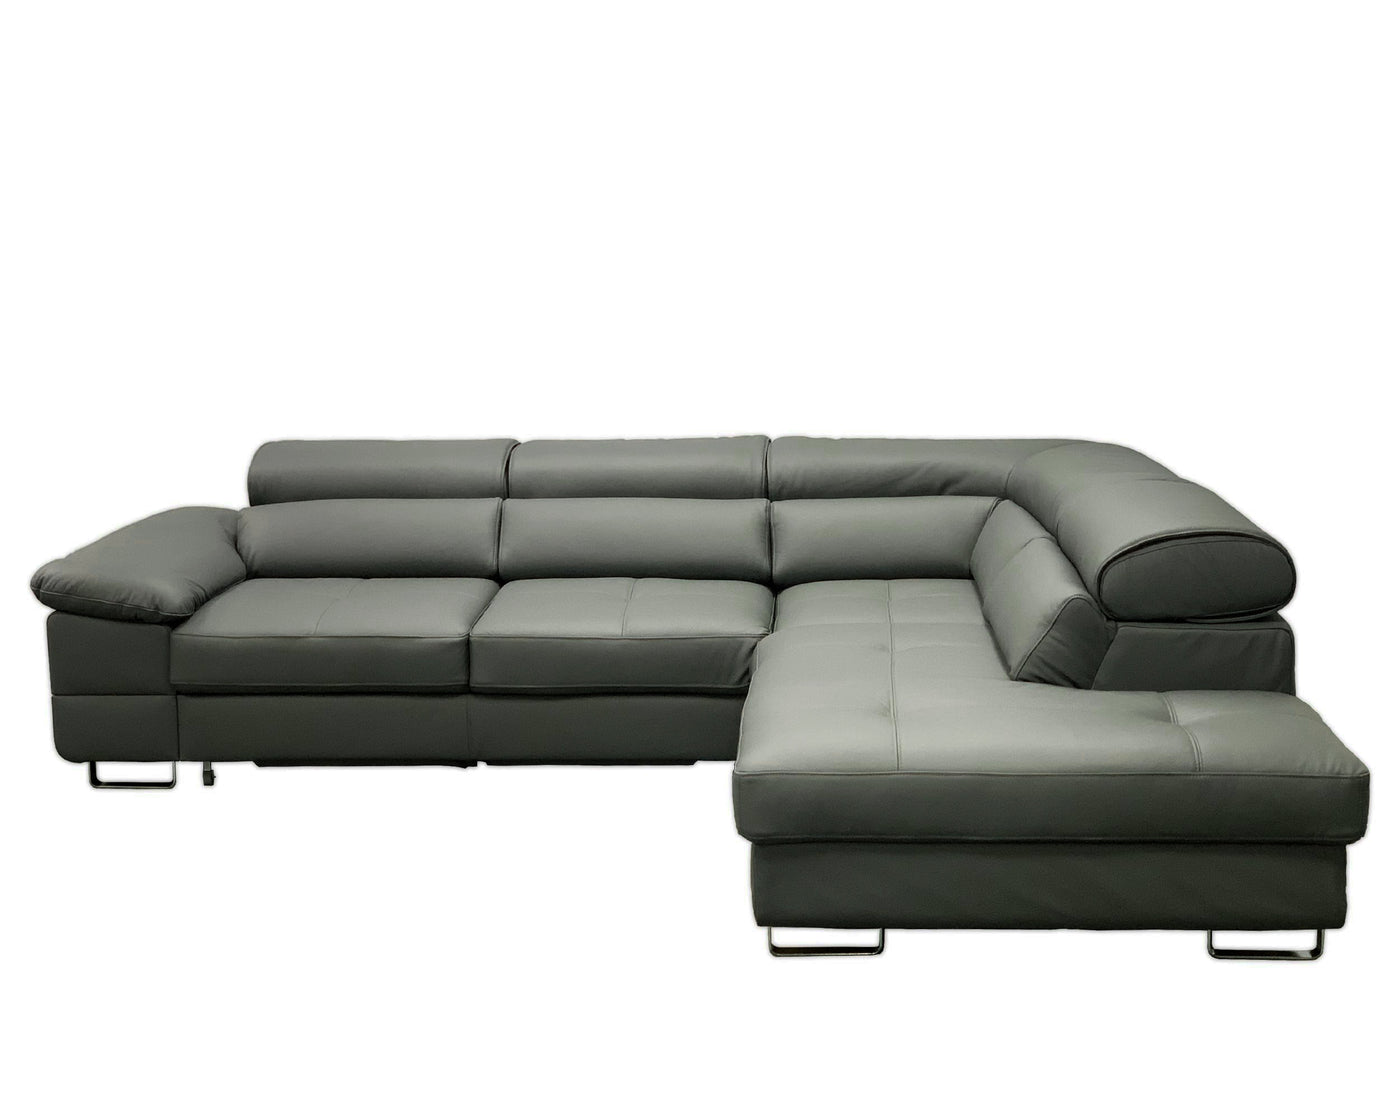 COSTA Leather Sectional Sleeper Sofa, Right Corner